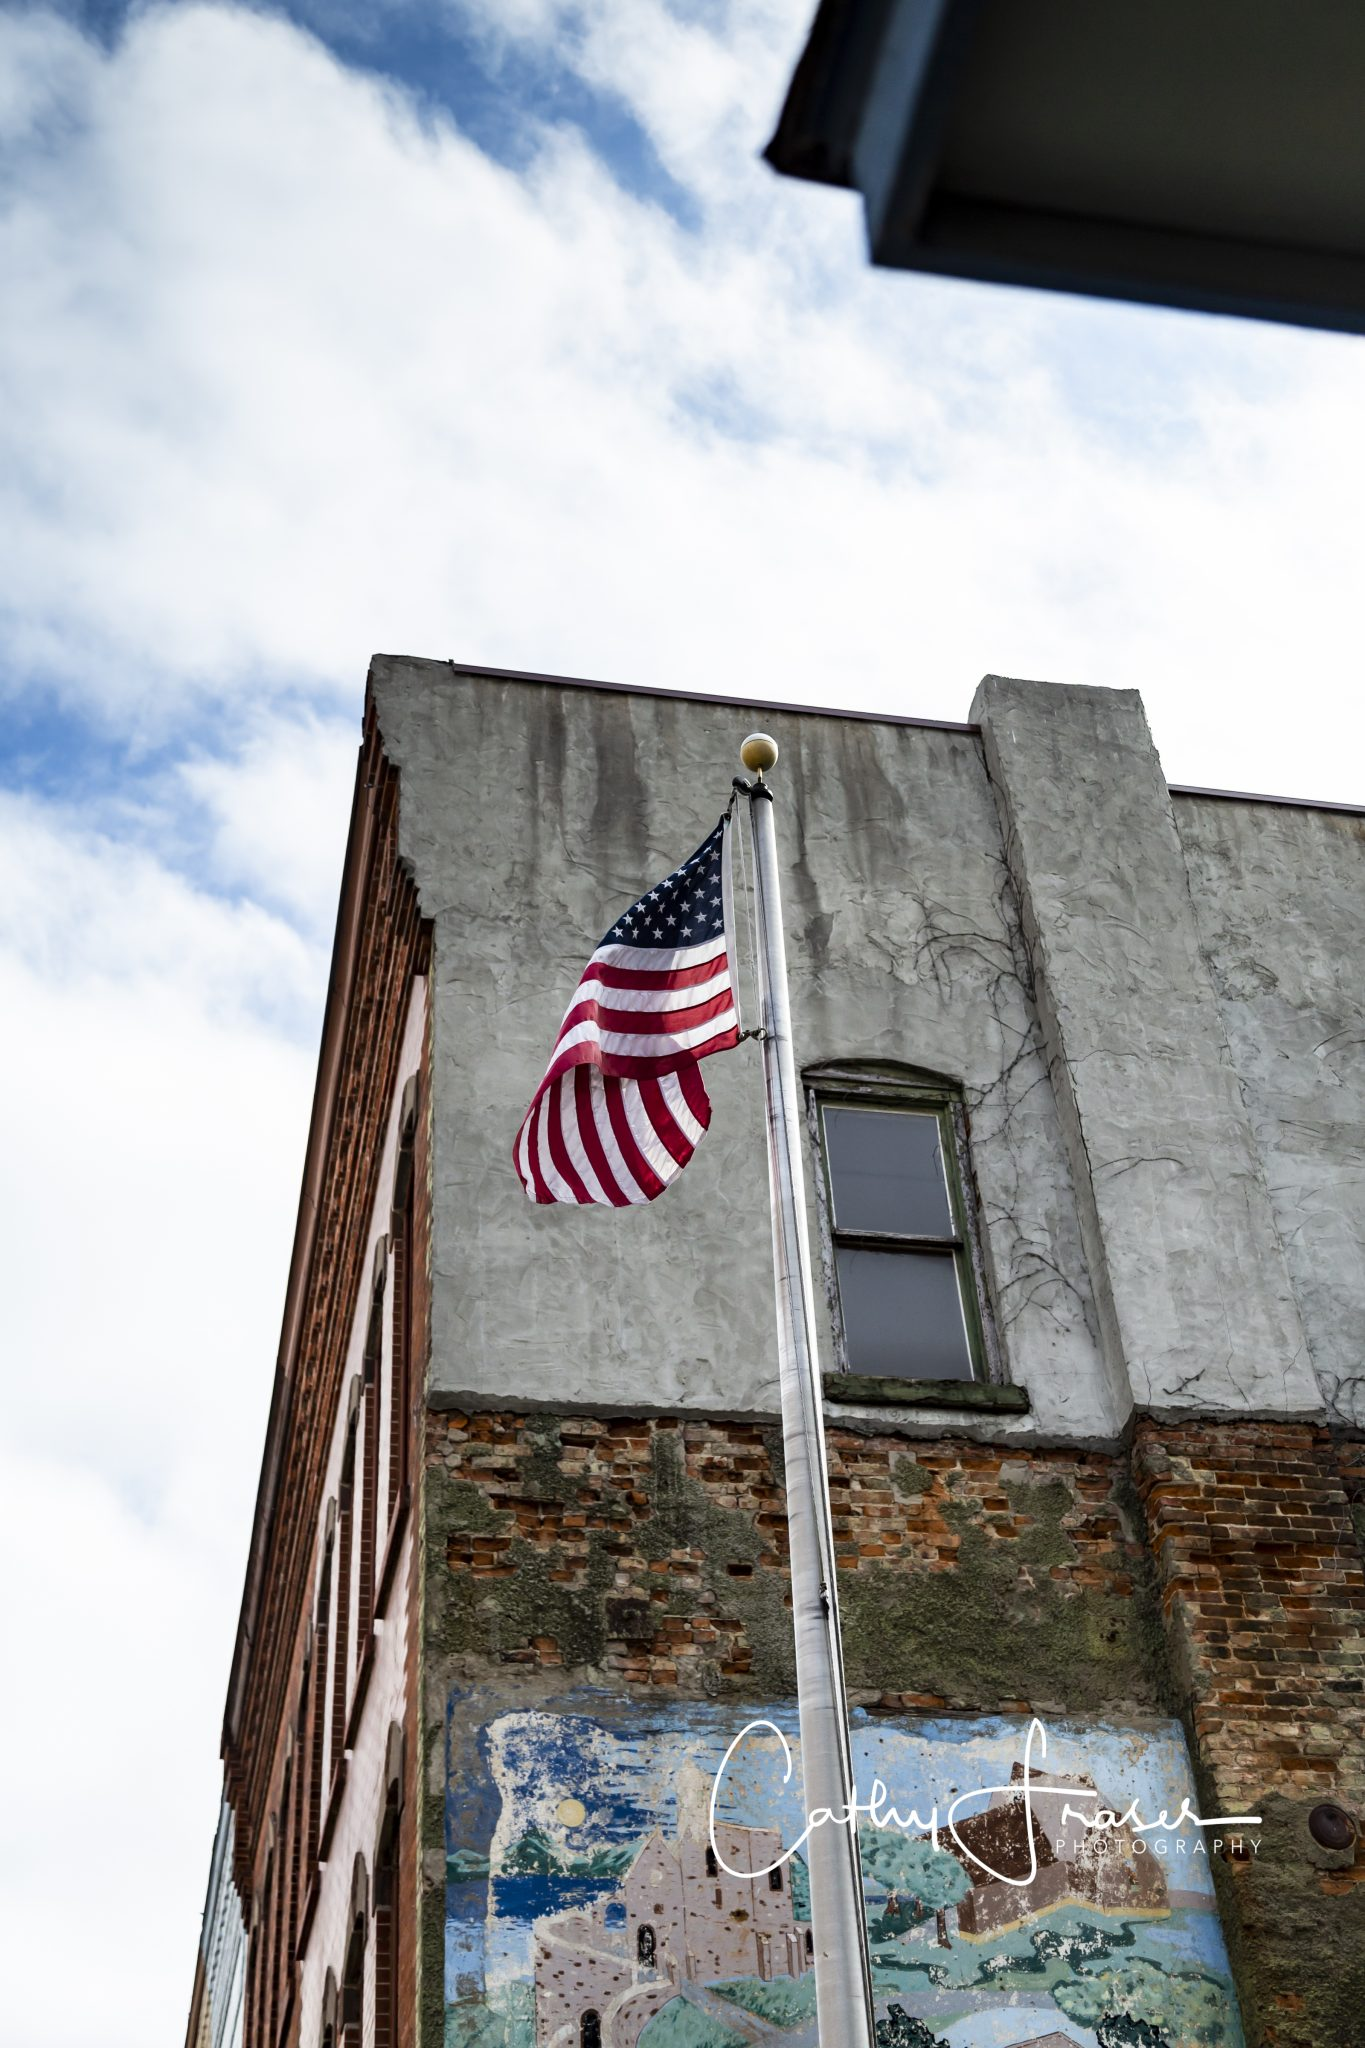 Landscape Photography of a flag in front of a building in Penn Yan New York